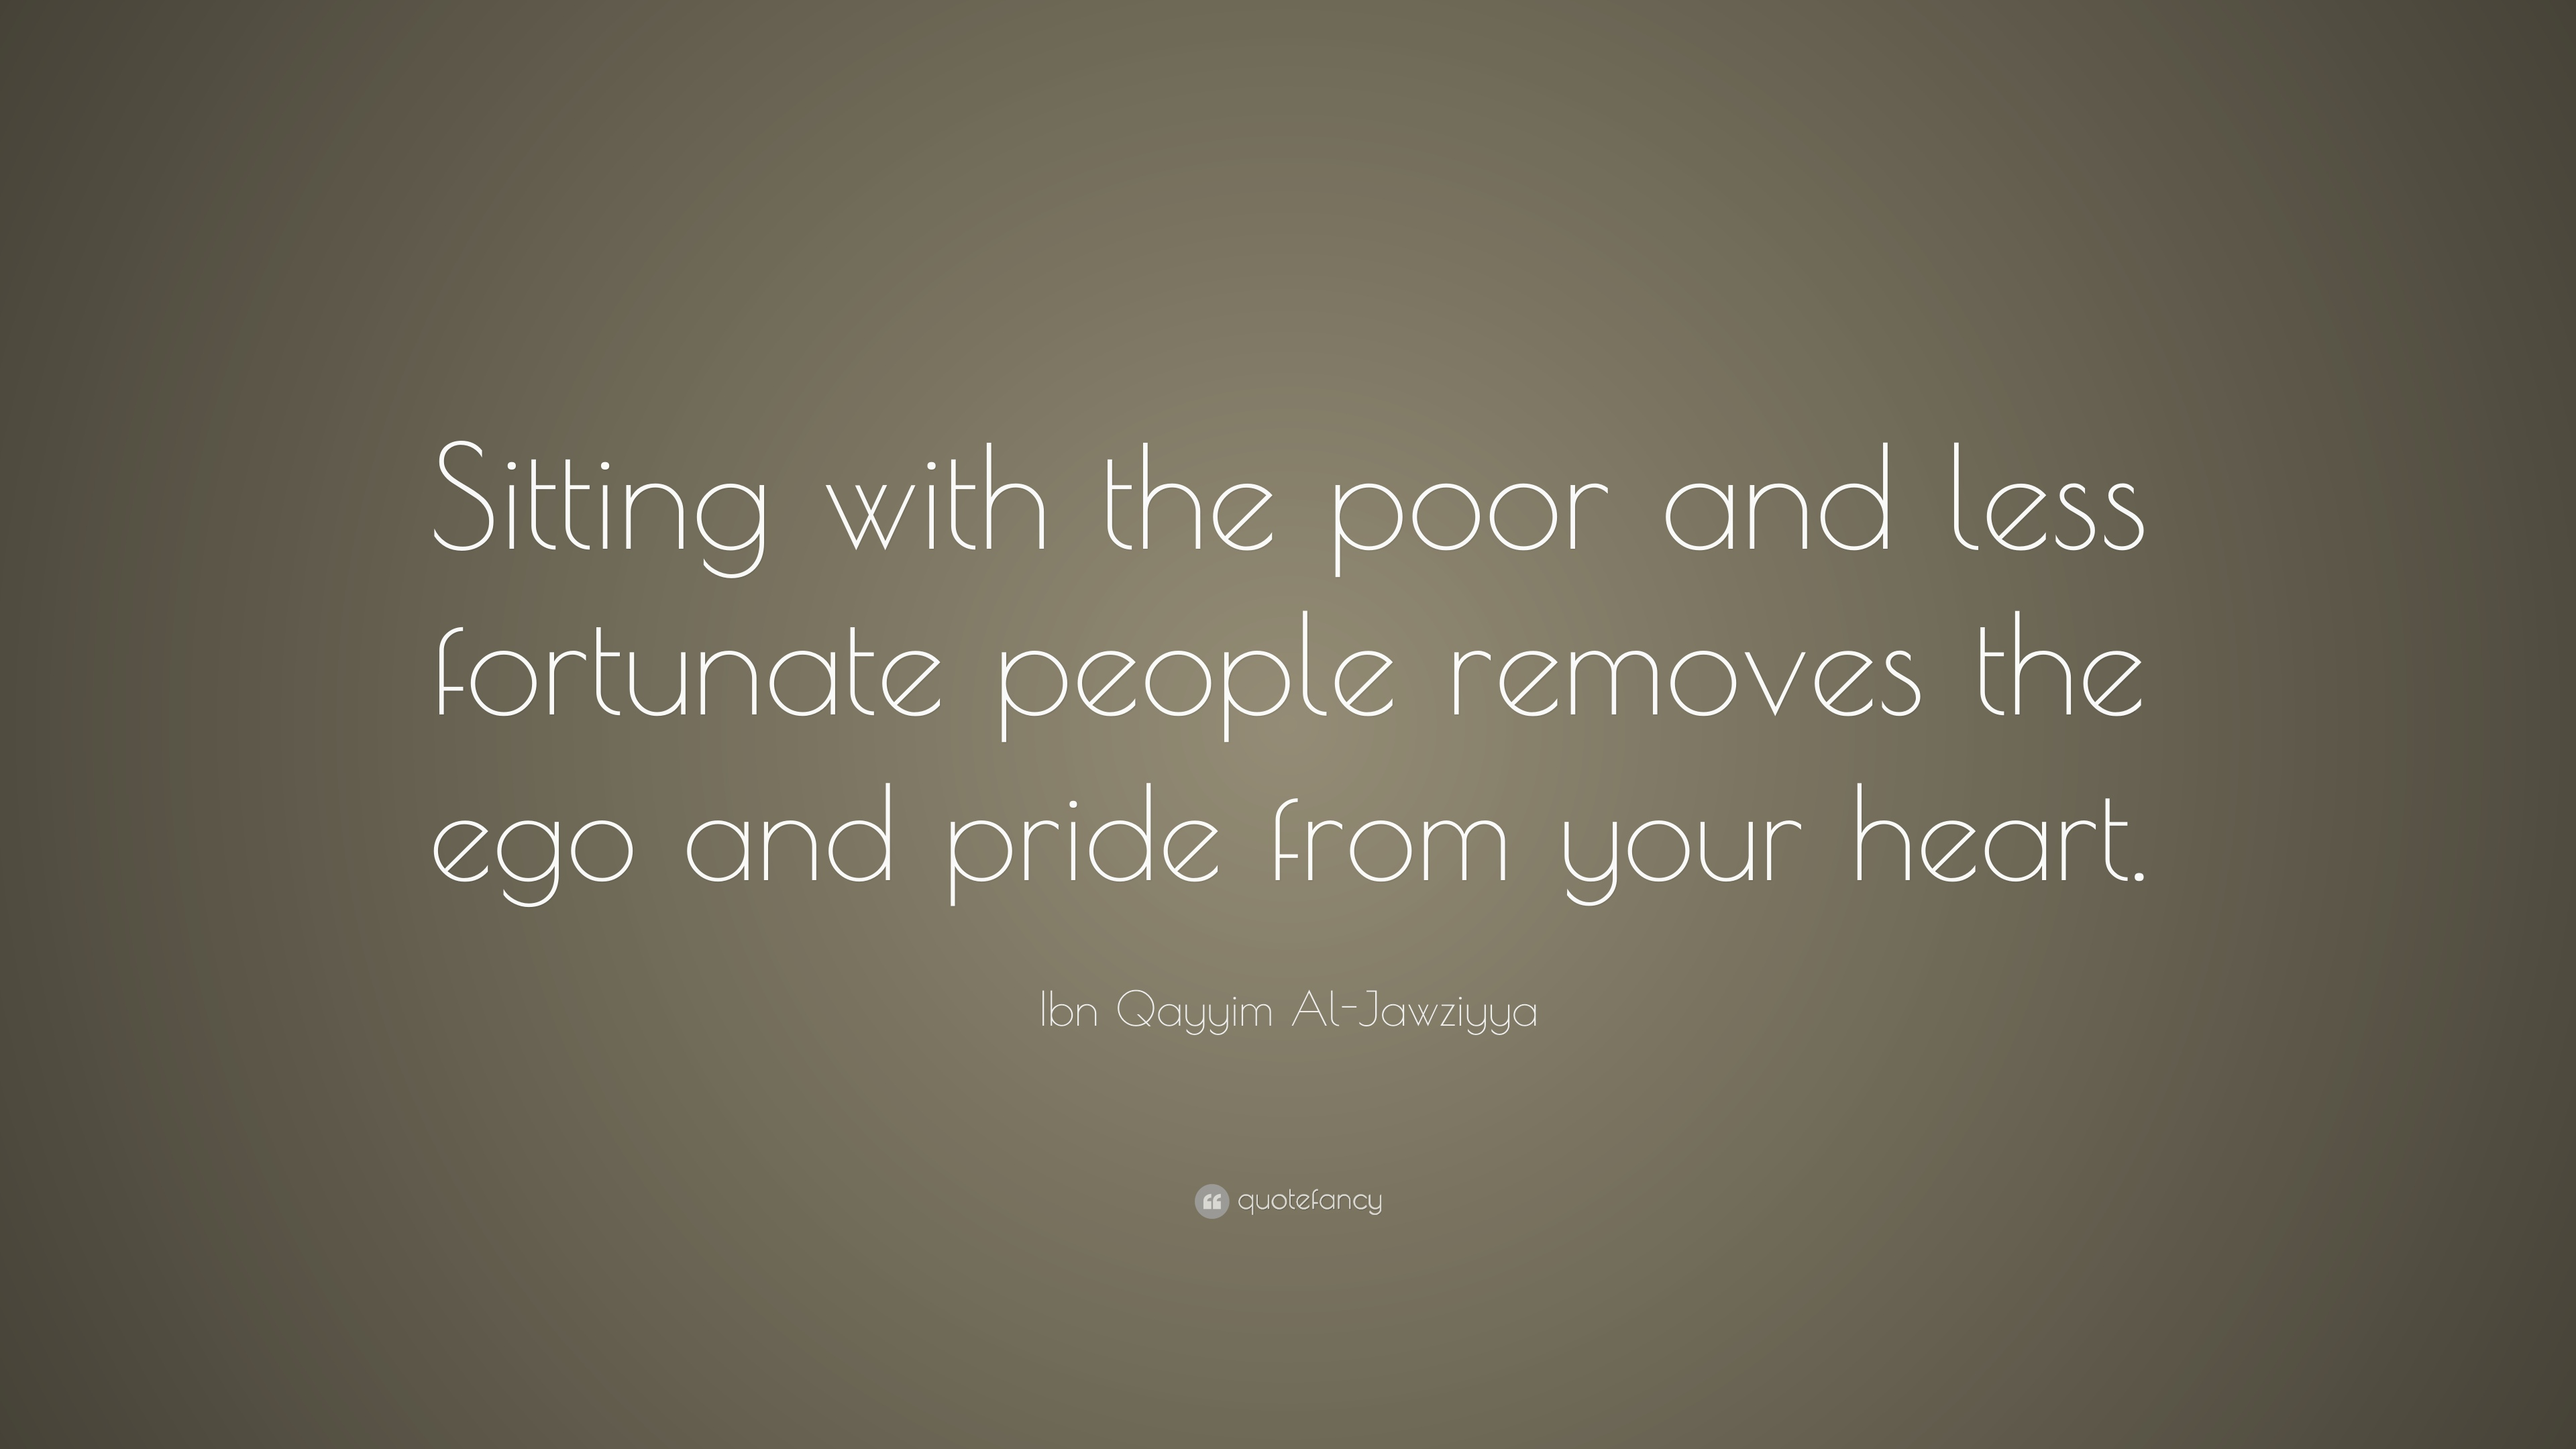 Ibn Qayyim Al Jawziyya Quote Sitting With The Poor And Less